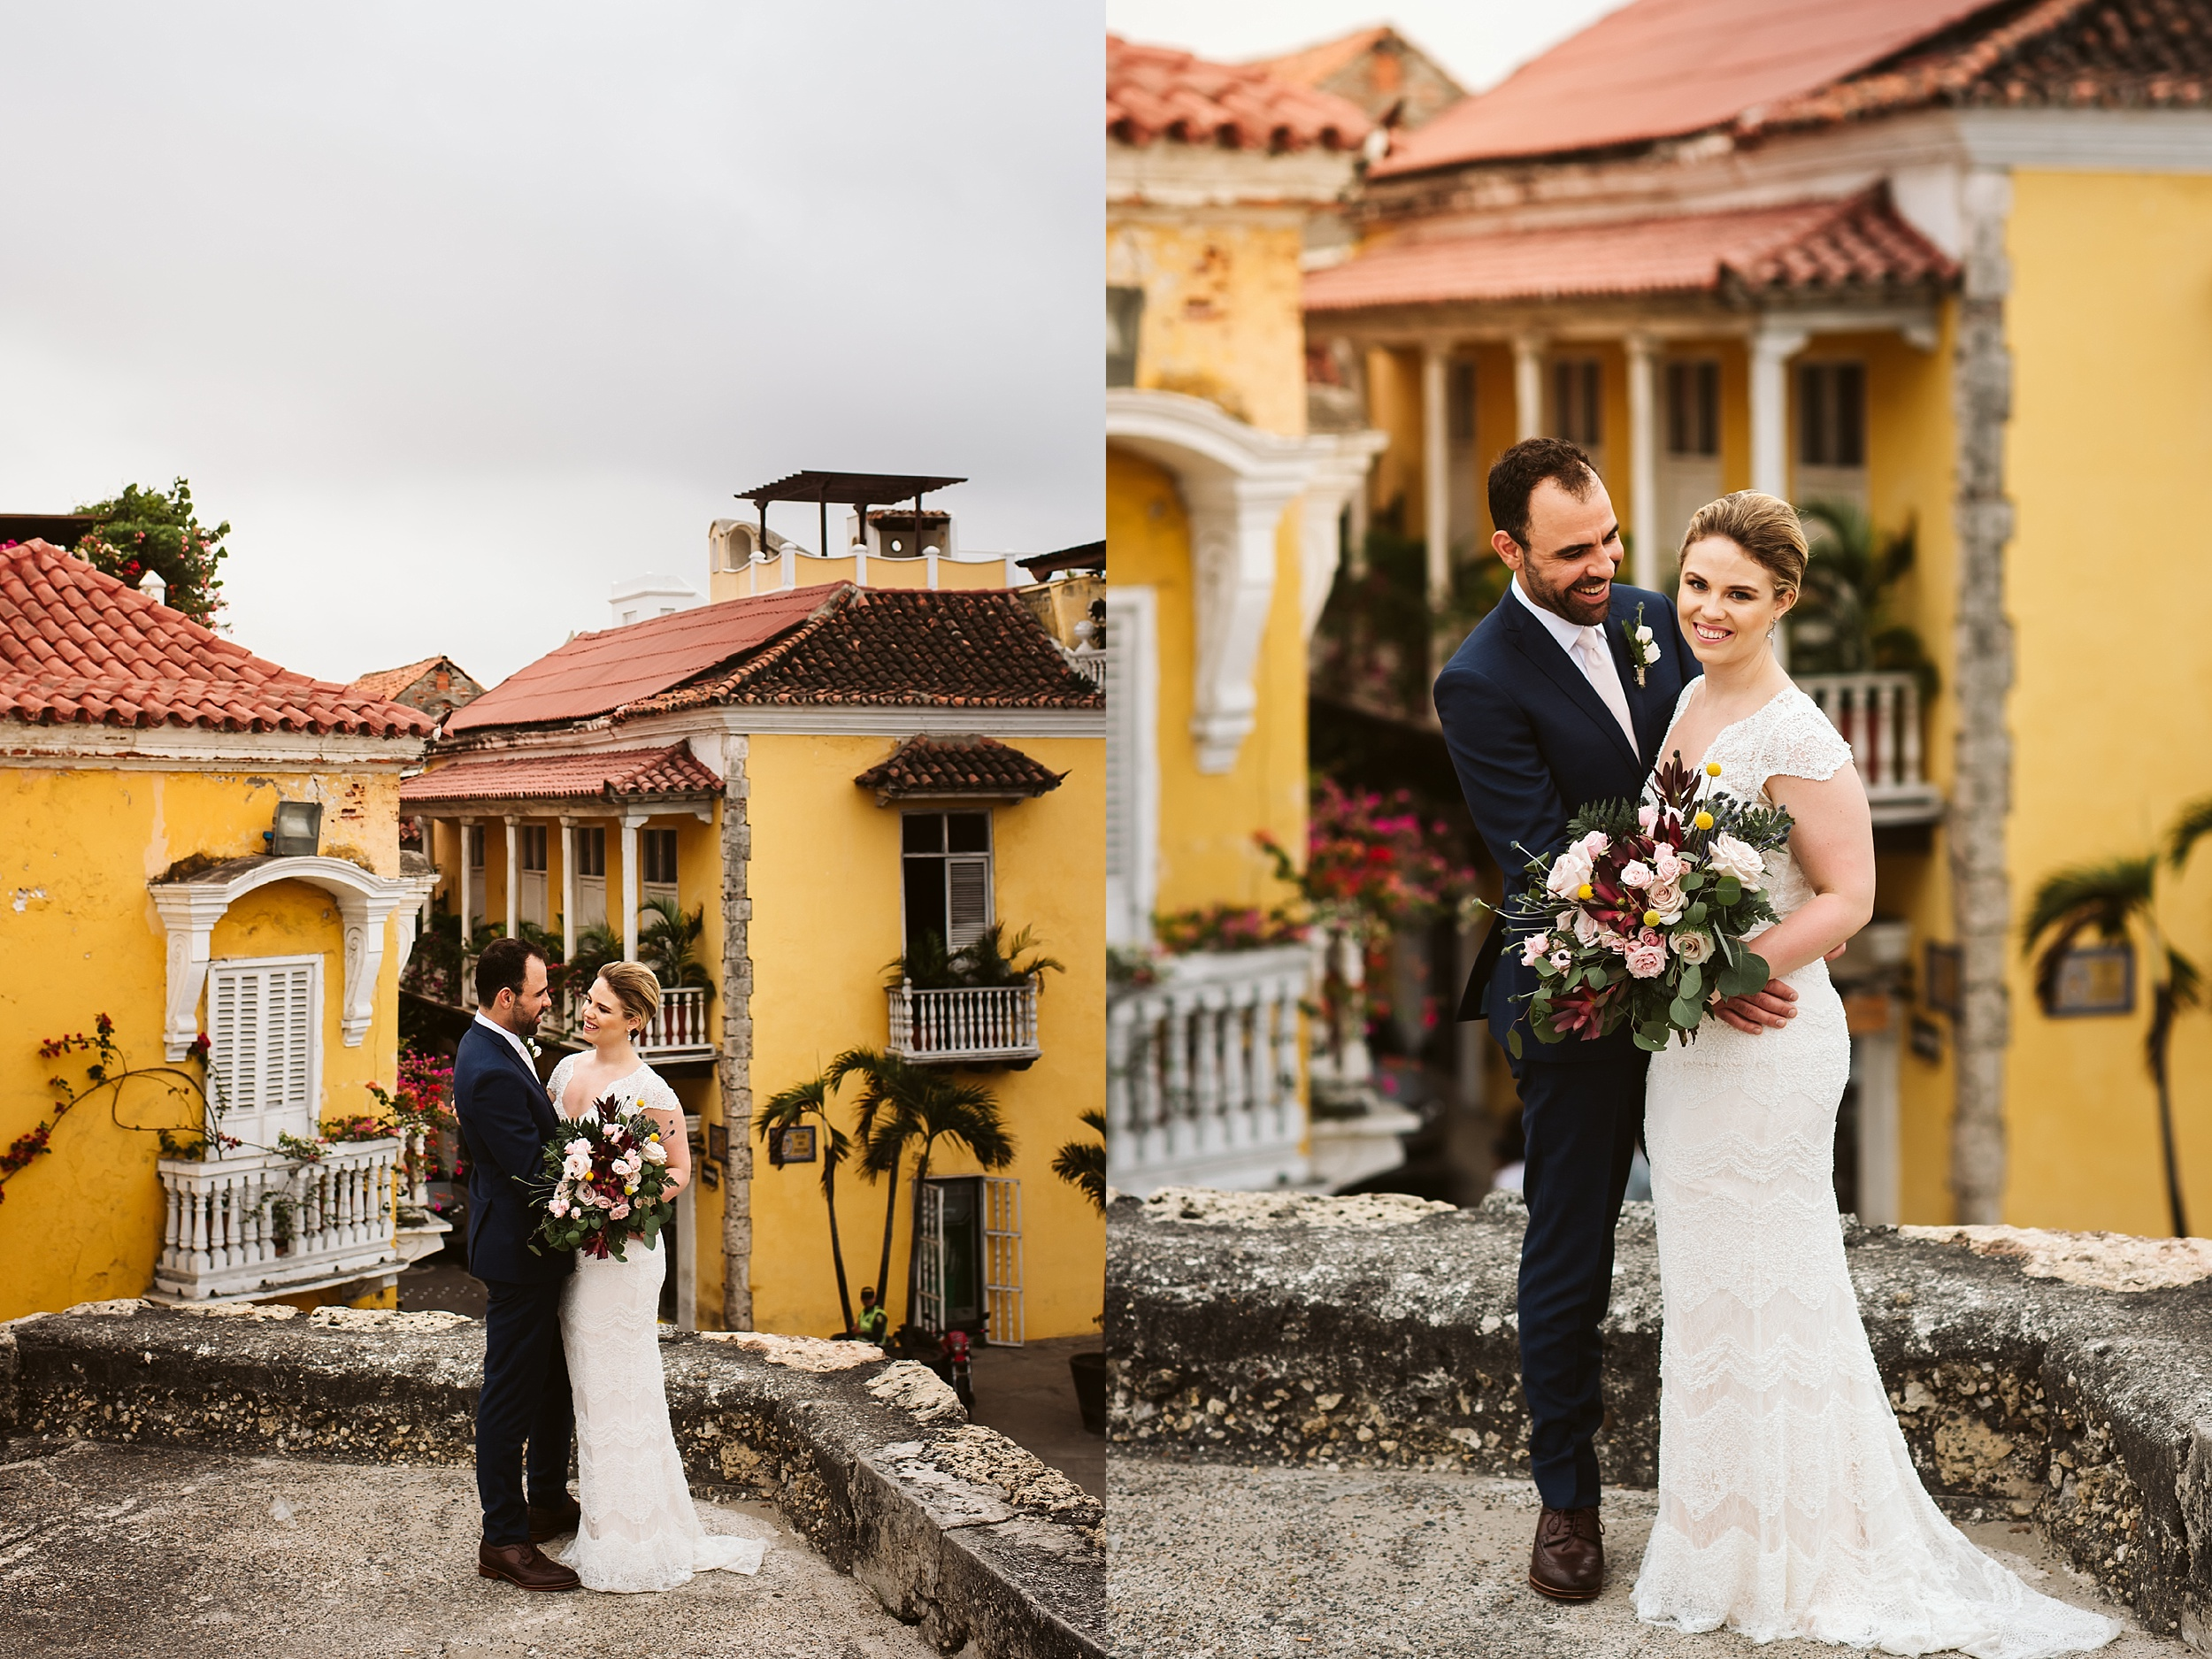 Toronto_Wedding_Photographer_Colombia_Destination_Wedding_0037.jpg